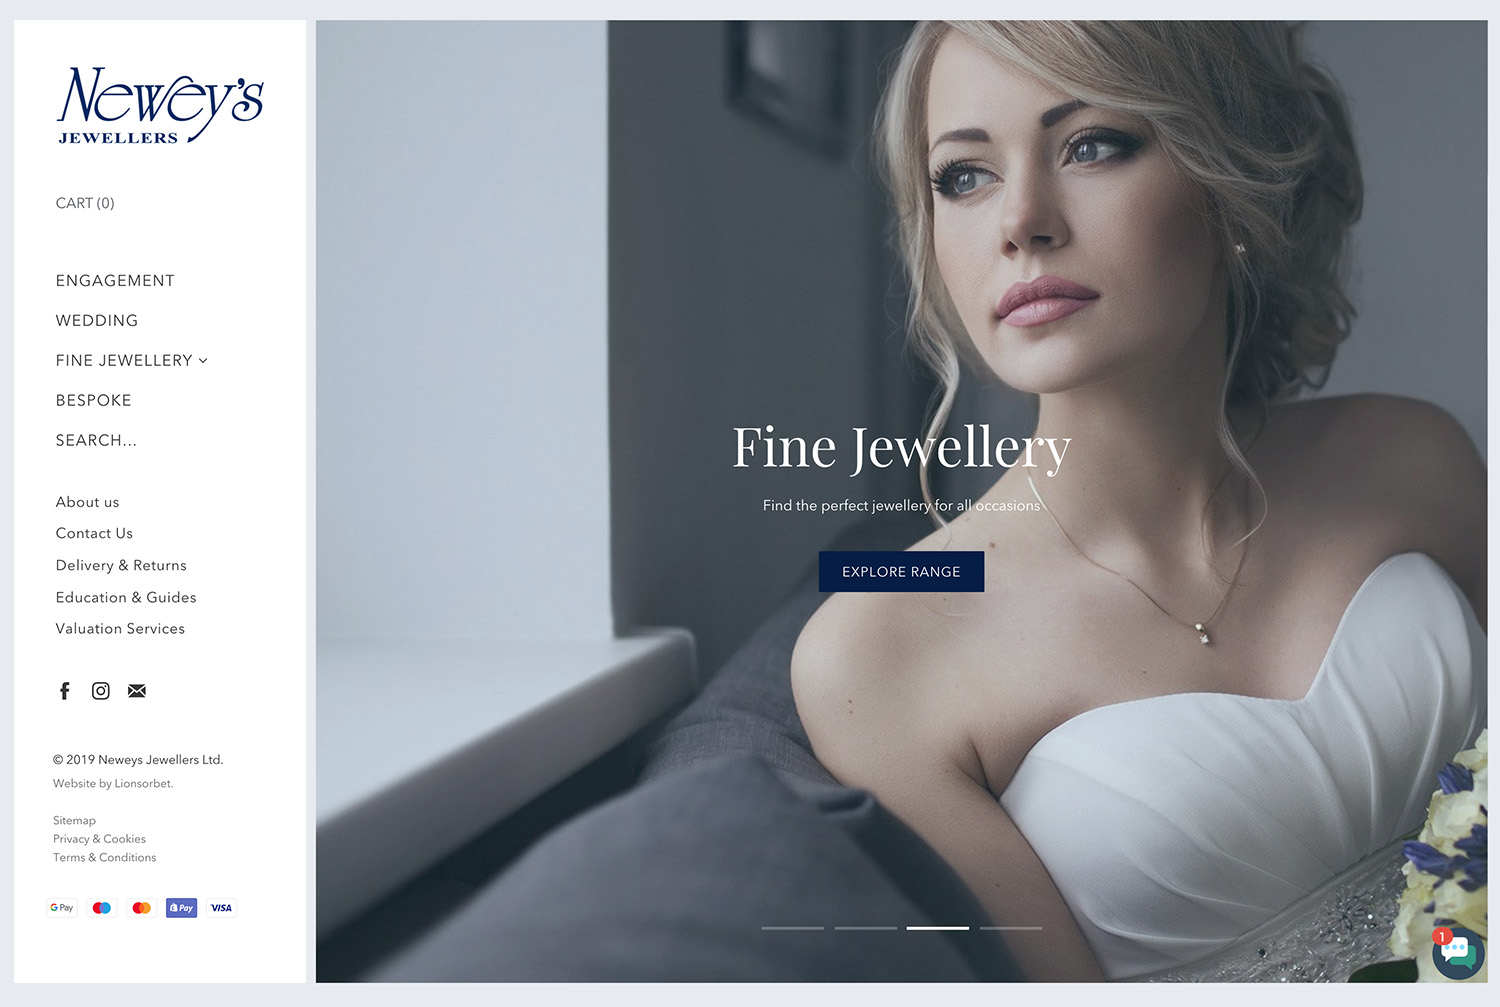 Neweys Jewellers - Newey's Jewellers is a family-run business which has been established for 48 years. With a prominent retail presence in the historic Jewellery Quarter in Birmingham they are known for their expertly crafted, fine diamond jewellery.